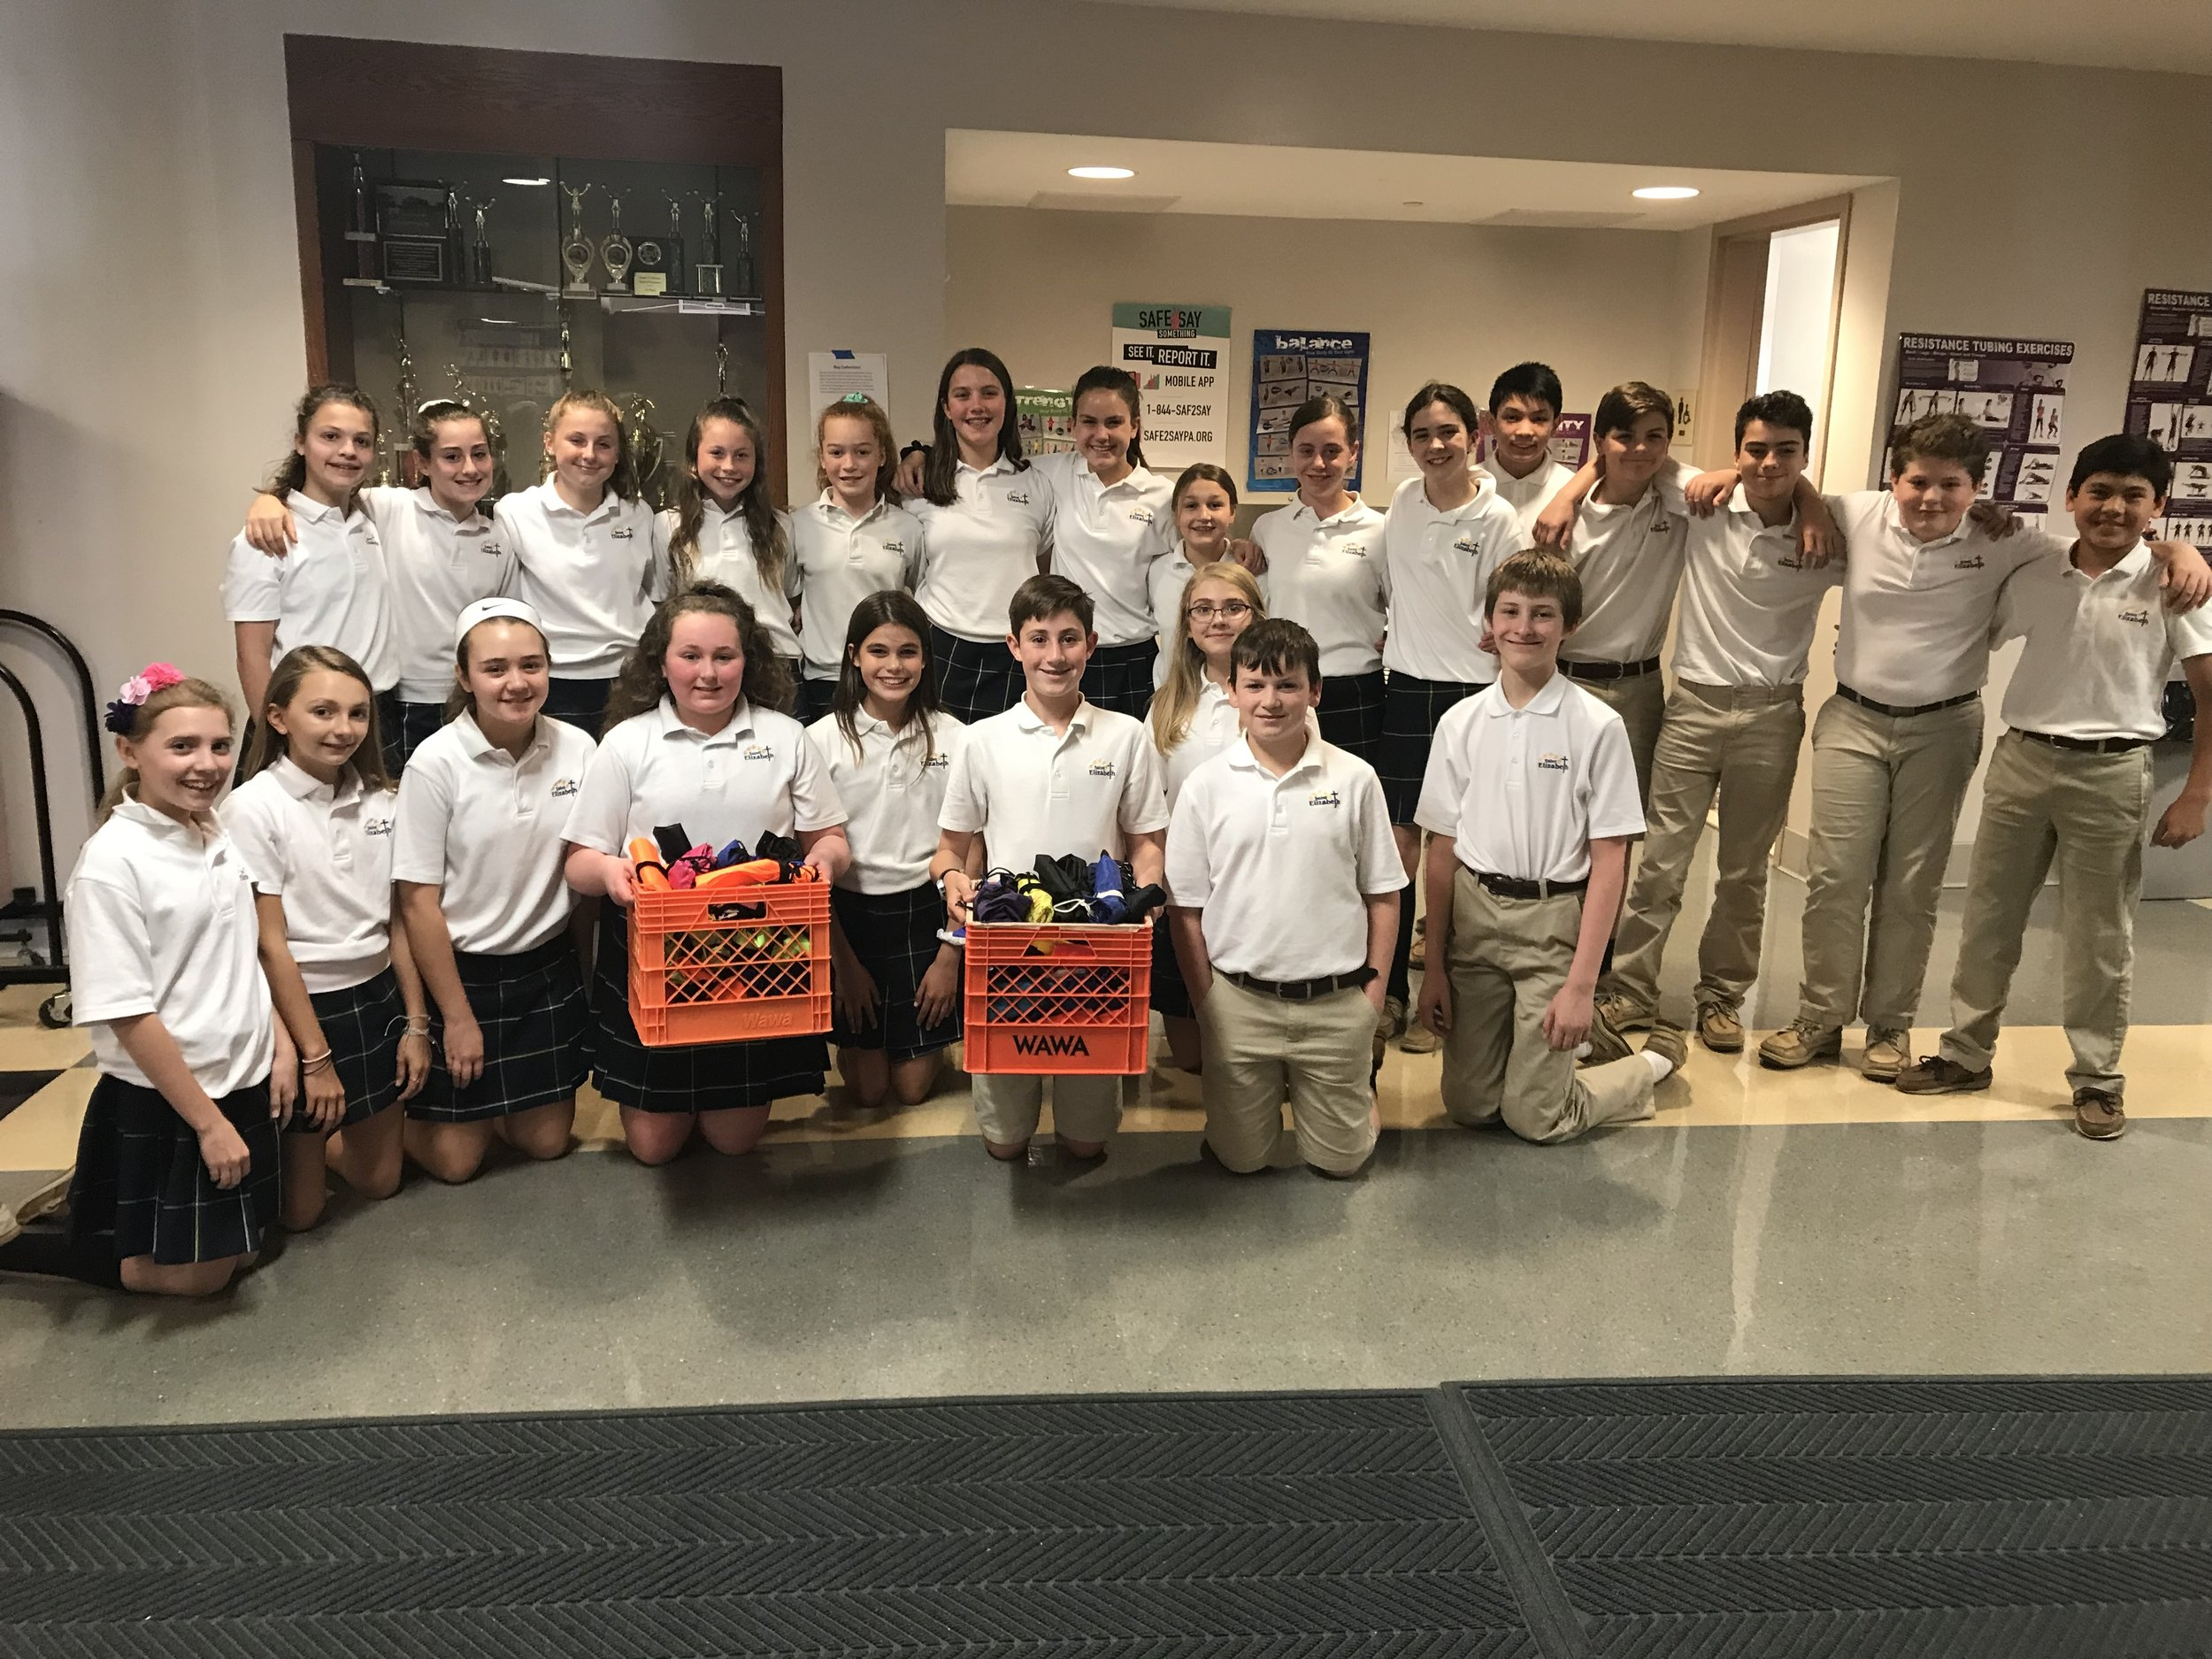 In May 2019, our Class of 2021 students sponsored a drawstring bag collection to benefit the Life Center of Delaware County. The drawstring bags are more durable than plastic shopping bags, so those who are homeless can have something more sturdy to carry around their belongings. They collected 134 bags in total from homerooms that contributed.